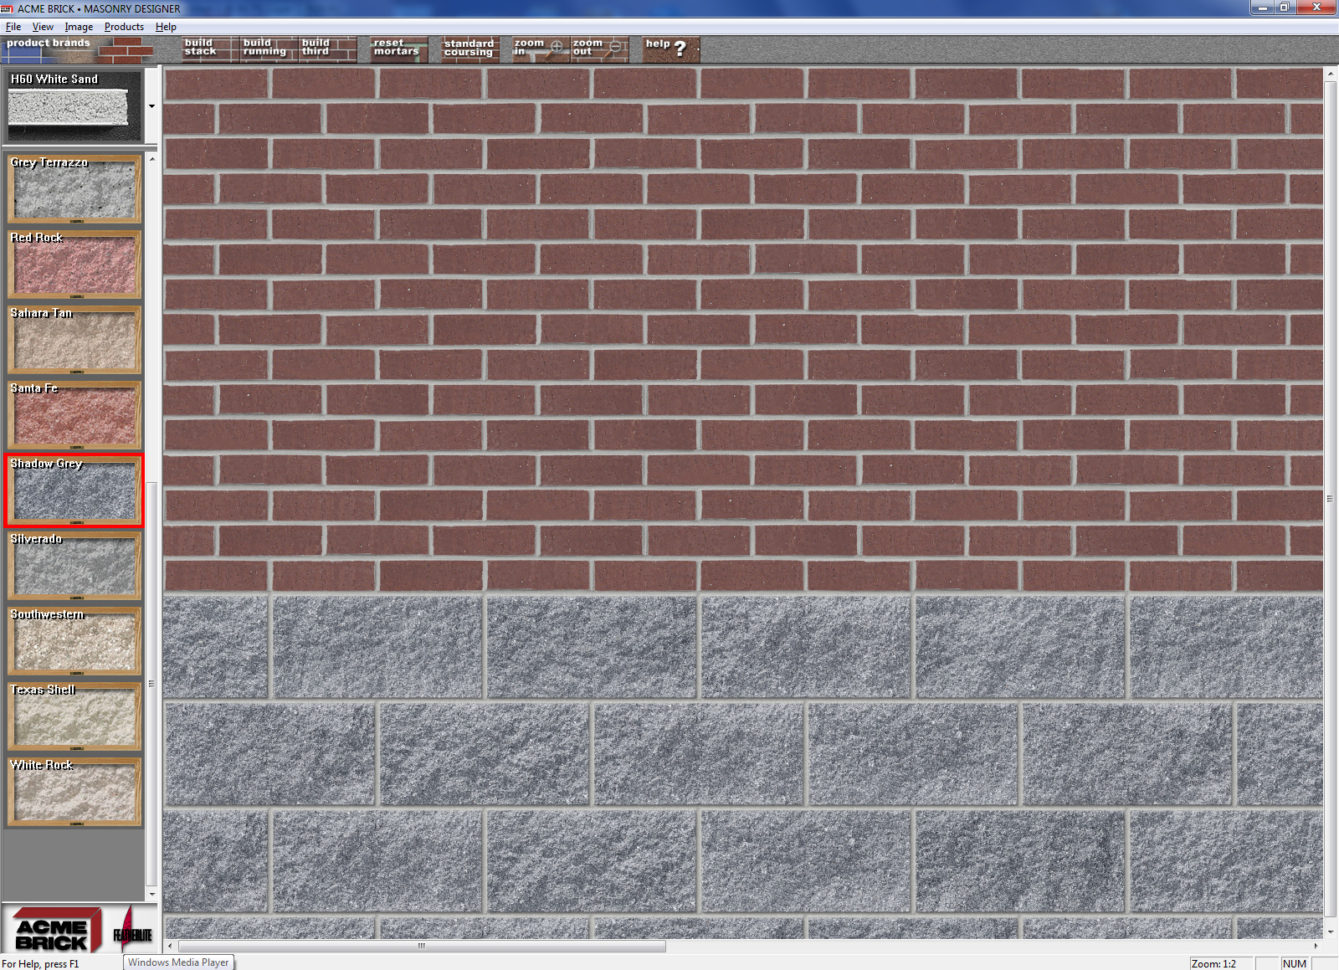 Masonry Shear Wall Design Spreadsheet Intended For Acme Bricks Masonry Designer Design Software Expands To, Masonry